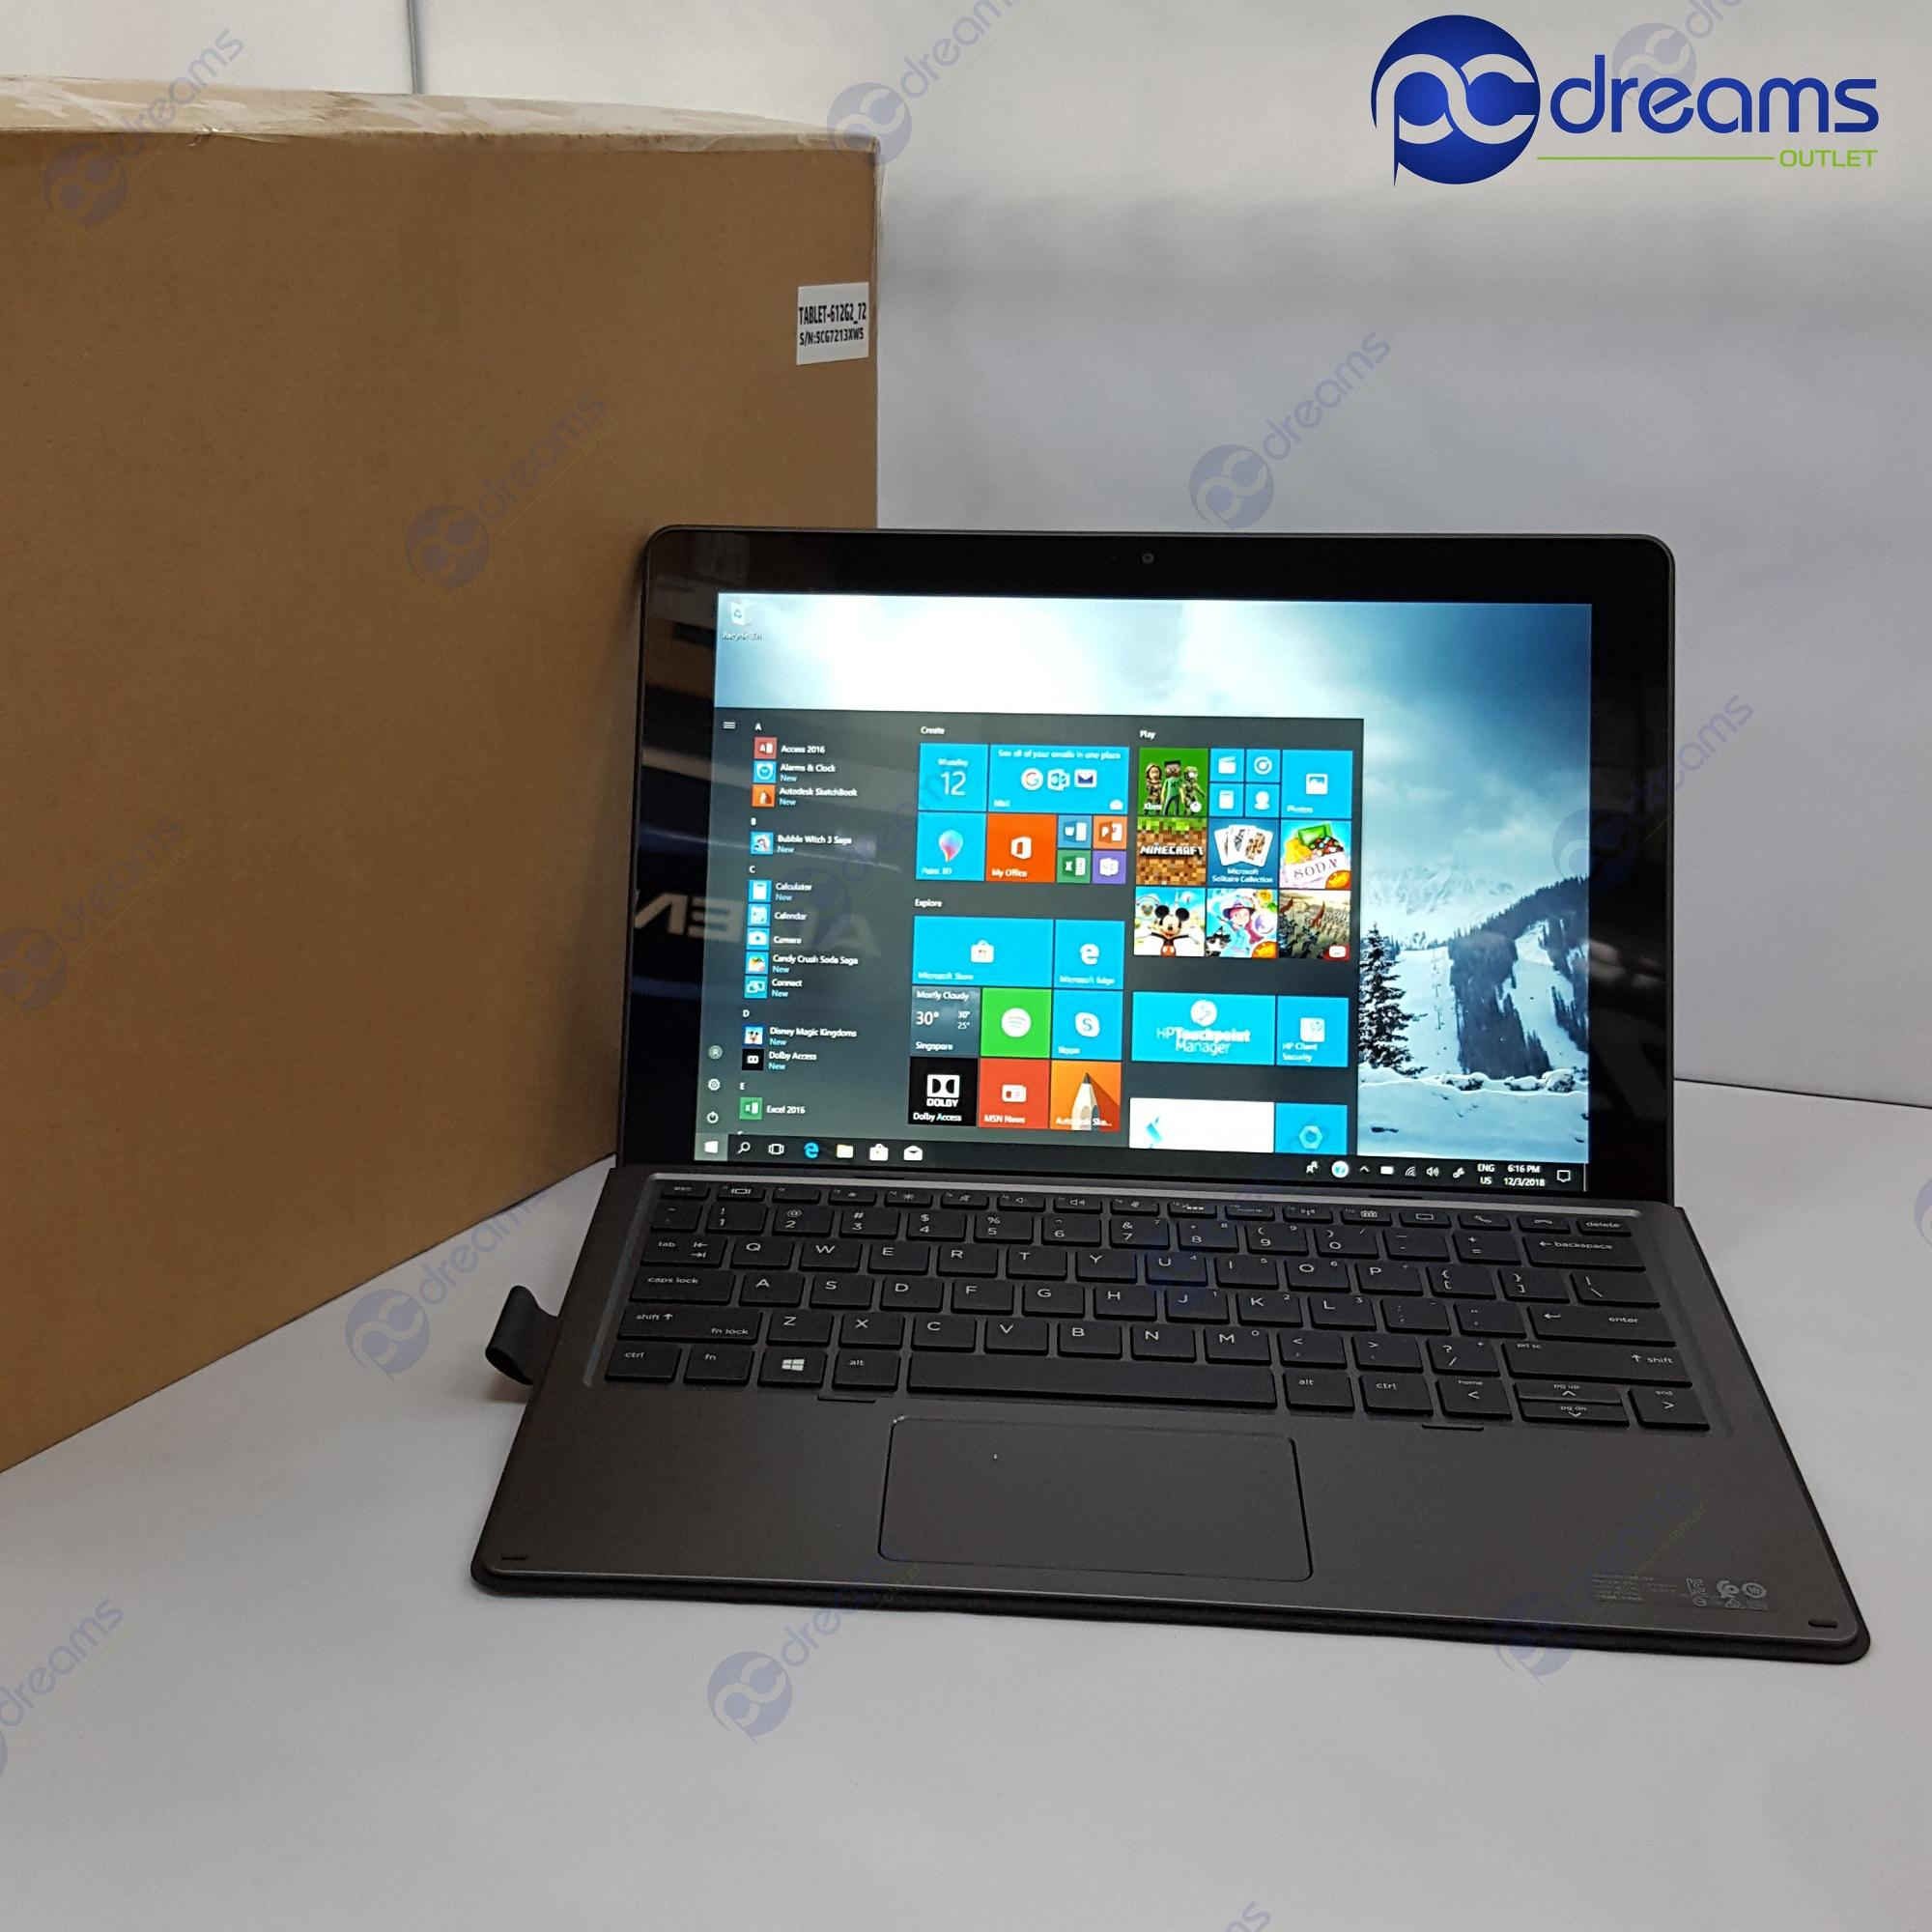 HP PRO X2 612 G2 with travel keyboard (Y1F96AV) i7-7Y75/8GB/512GB PCIe SSD [Premium Refreshed]